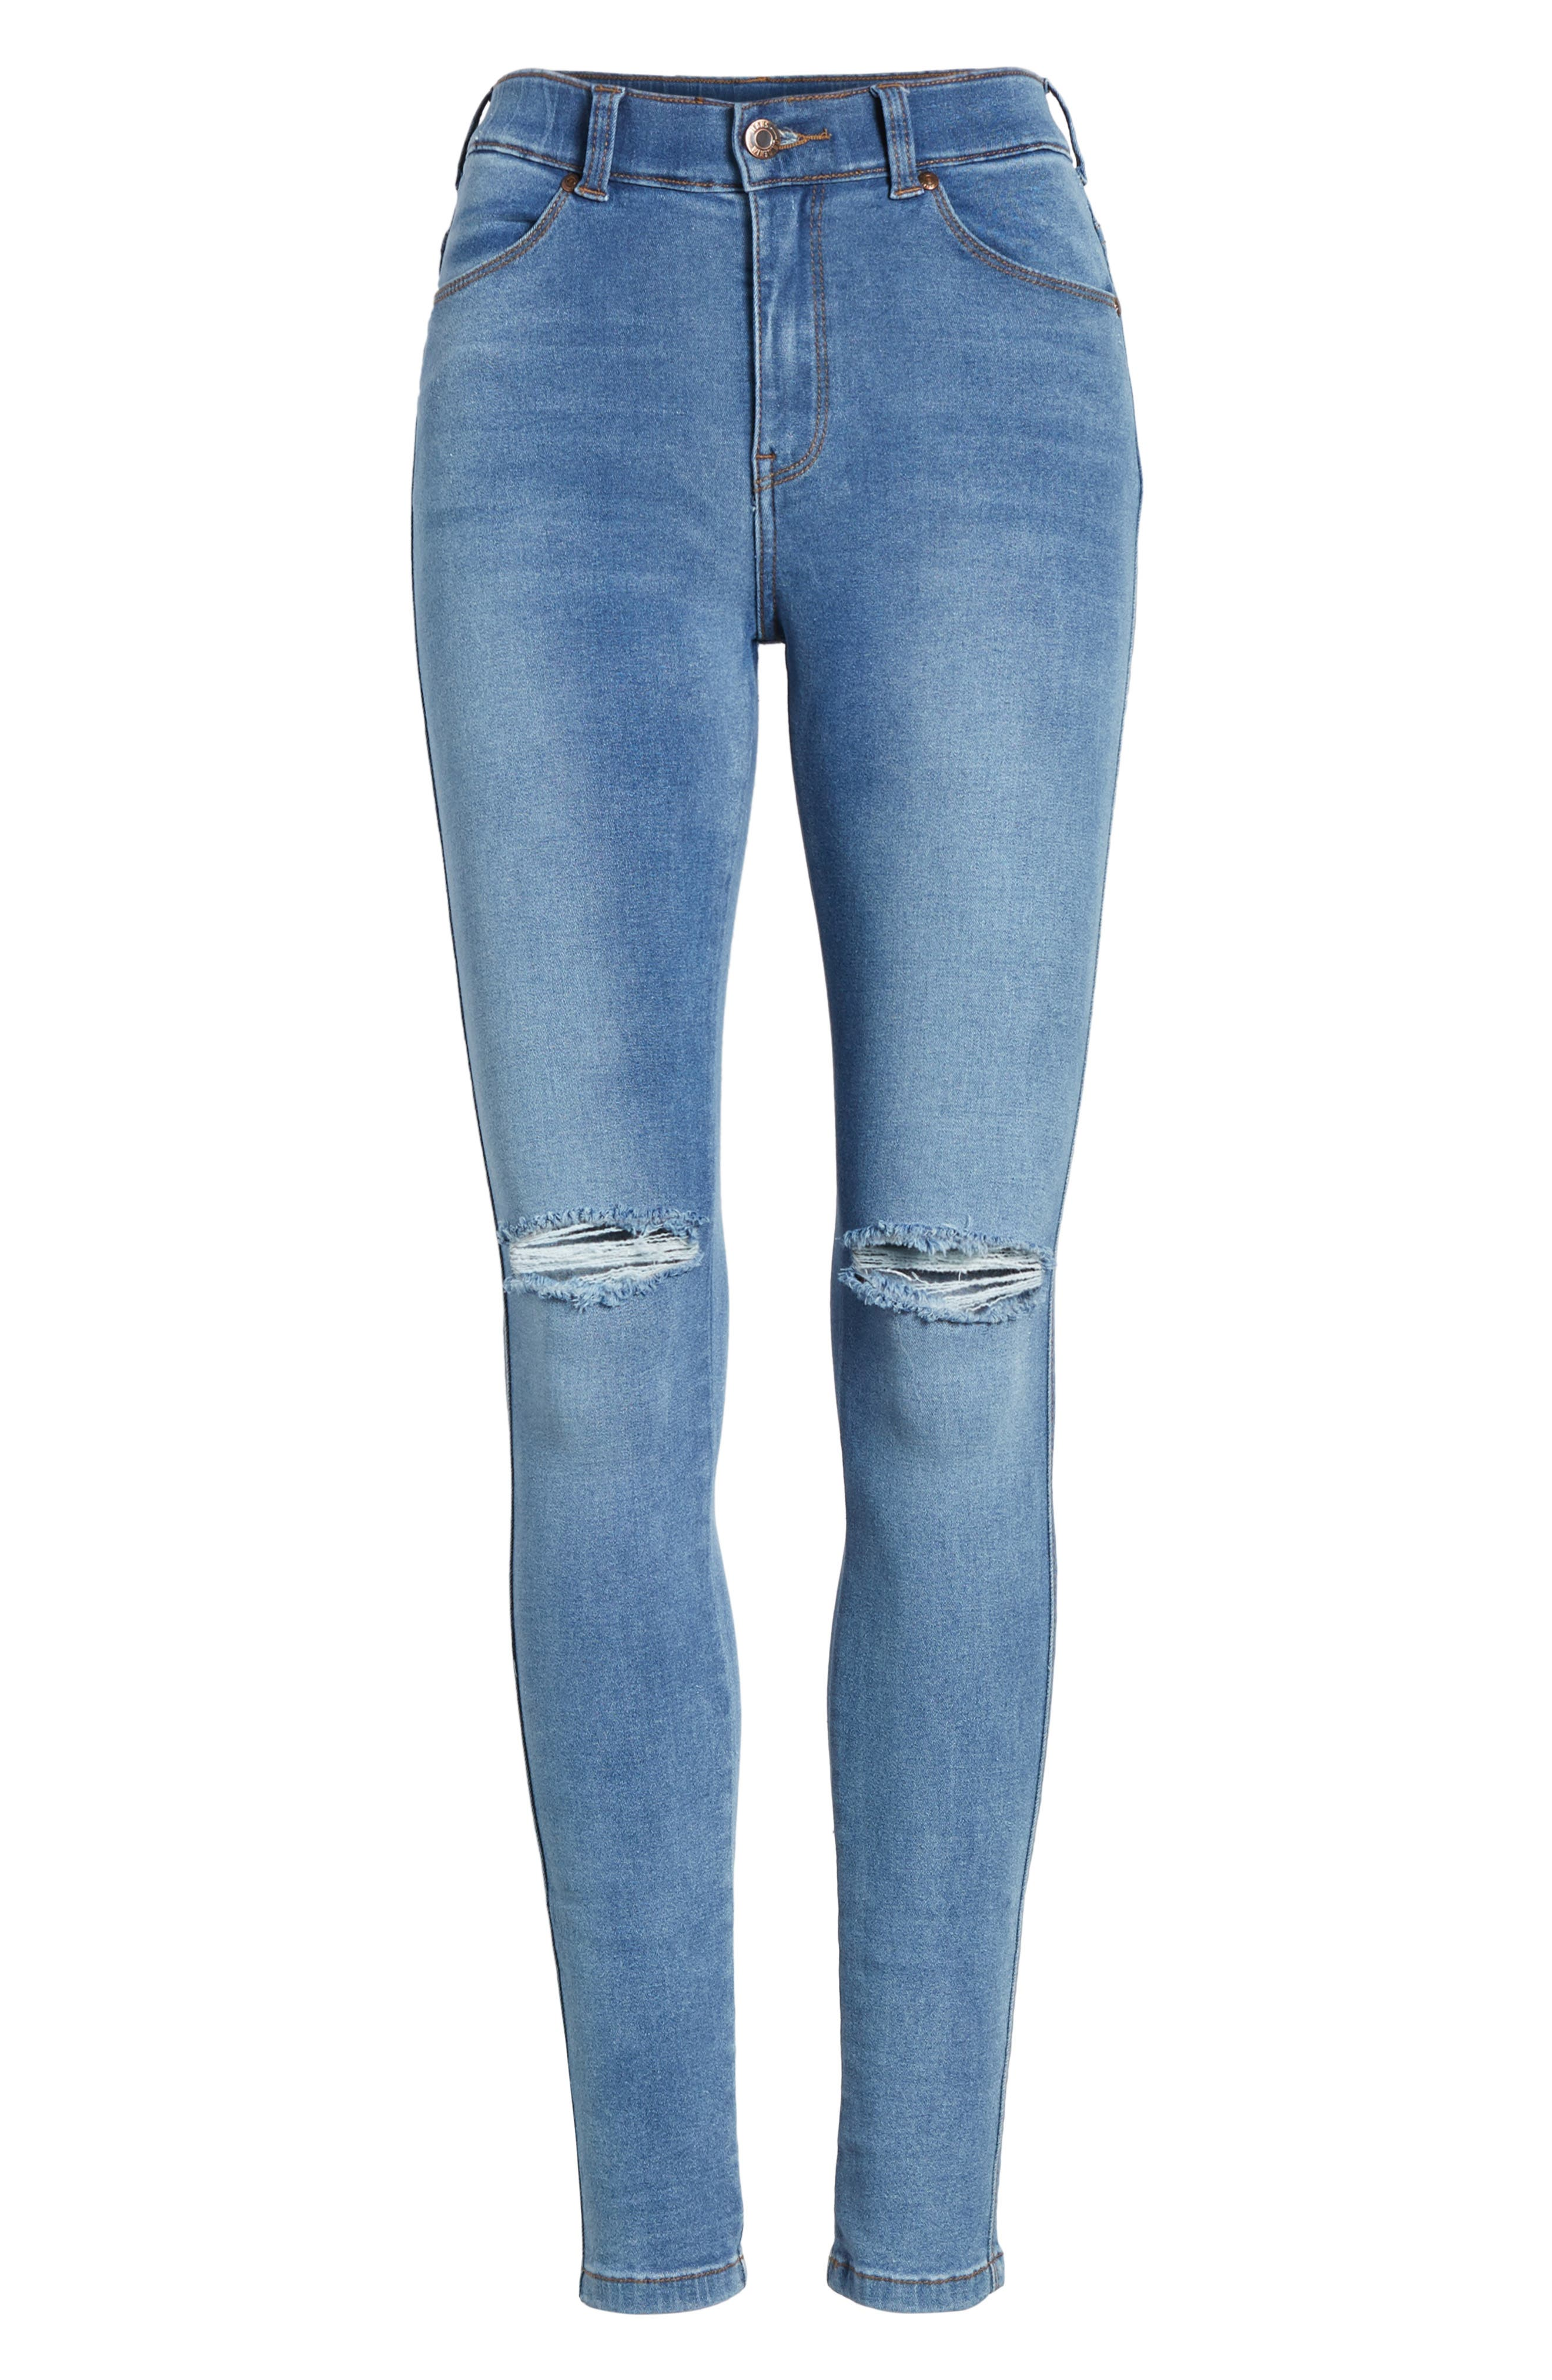 Lexy Ripped Skinny Jeans,                             Alternate thumbnail 7, color,                             Light Stone Destroyed